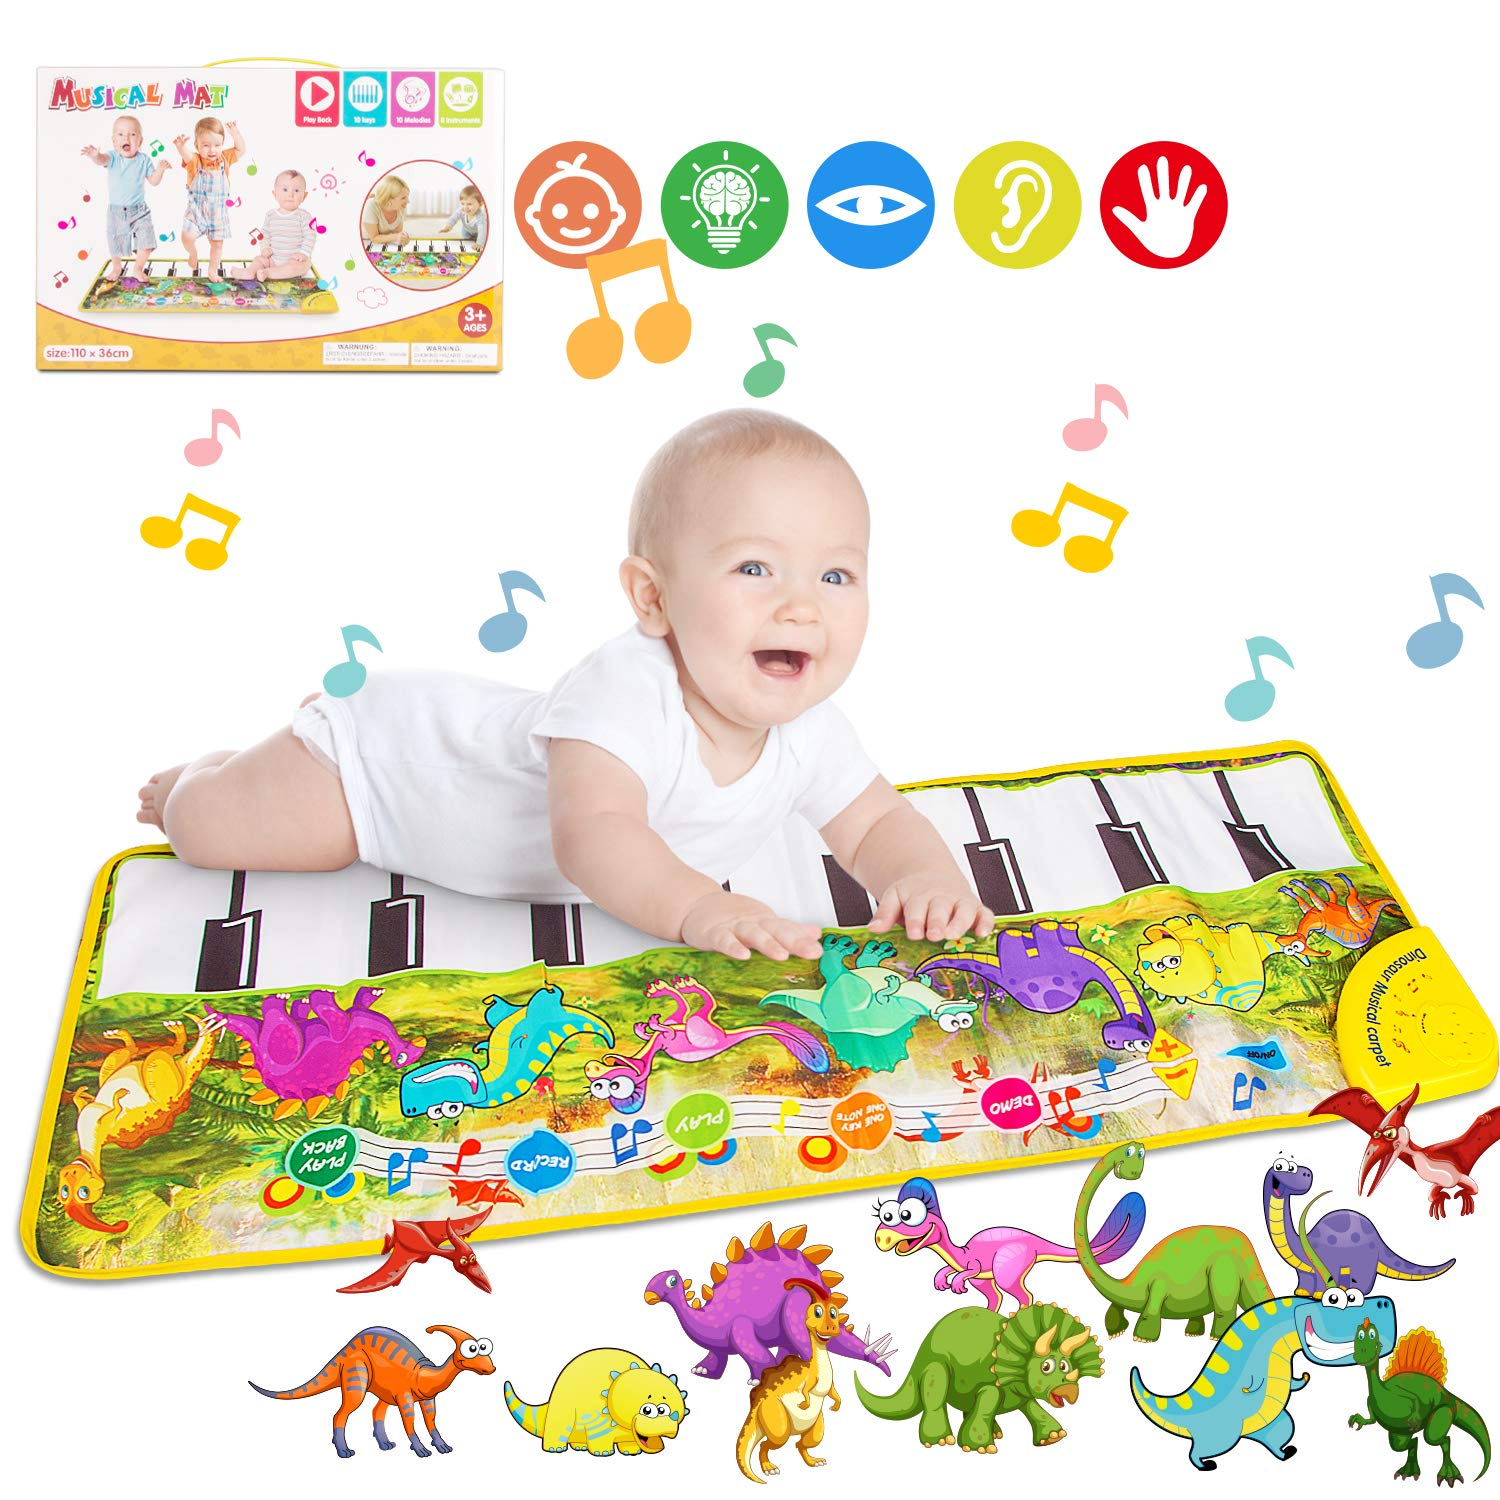 Piano Mat, Tencoz Musical Piano Mat with 8 Dinosaurs Sounds Portable Electronic Educational Musical Blanket Dinosaur Toys Gifts for Kids Toddler Girls Boys